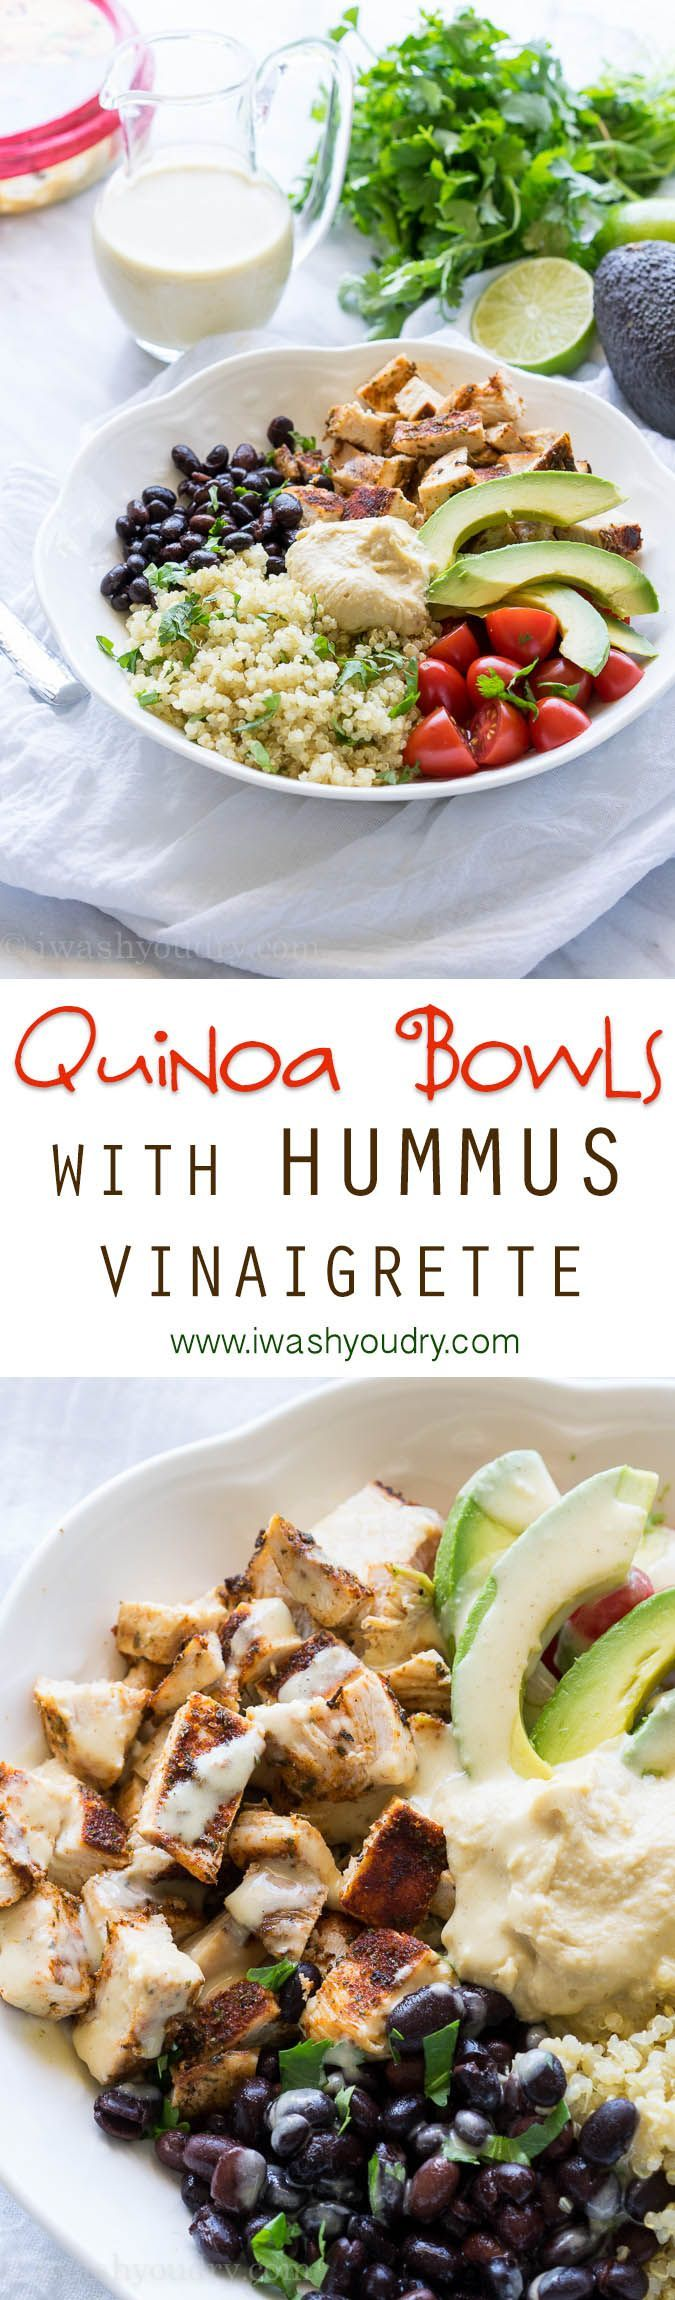 54 best Hummus for Lunch images on Pinterest | Healthy meals ...